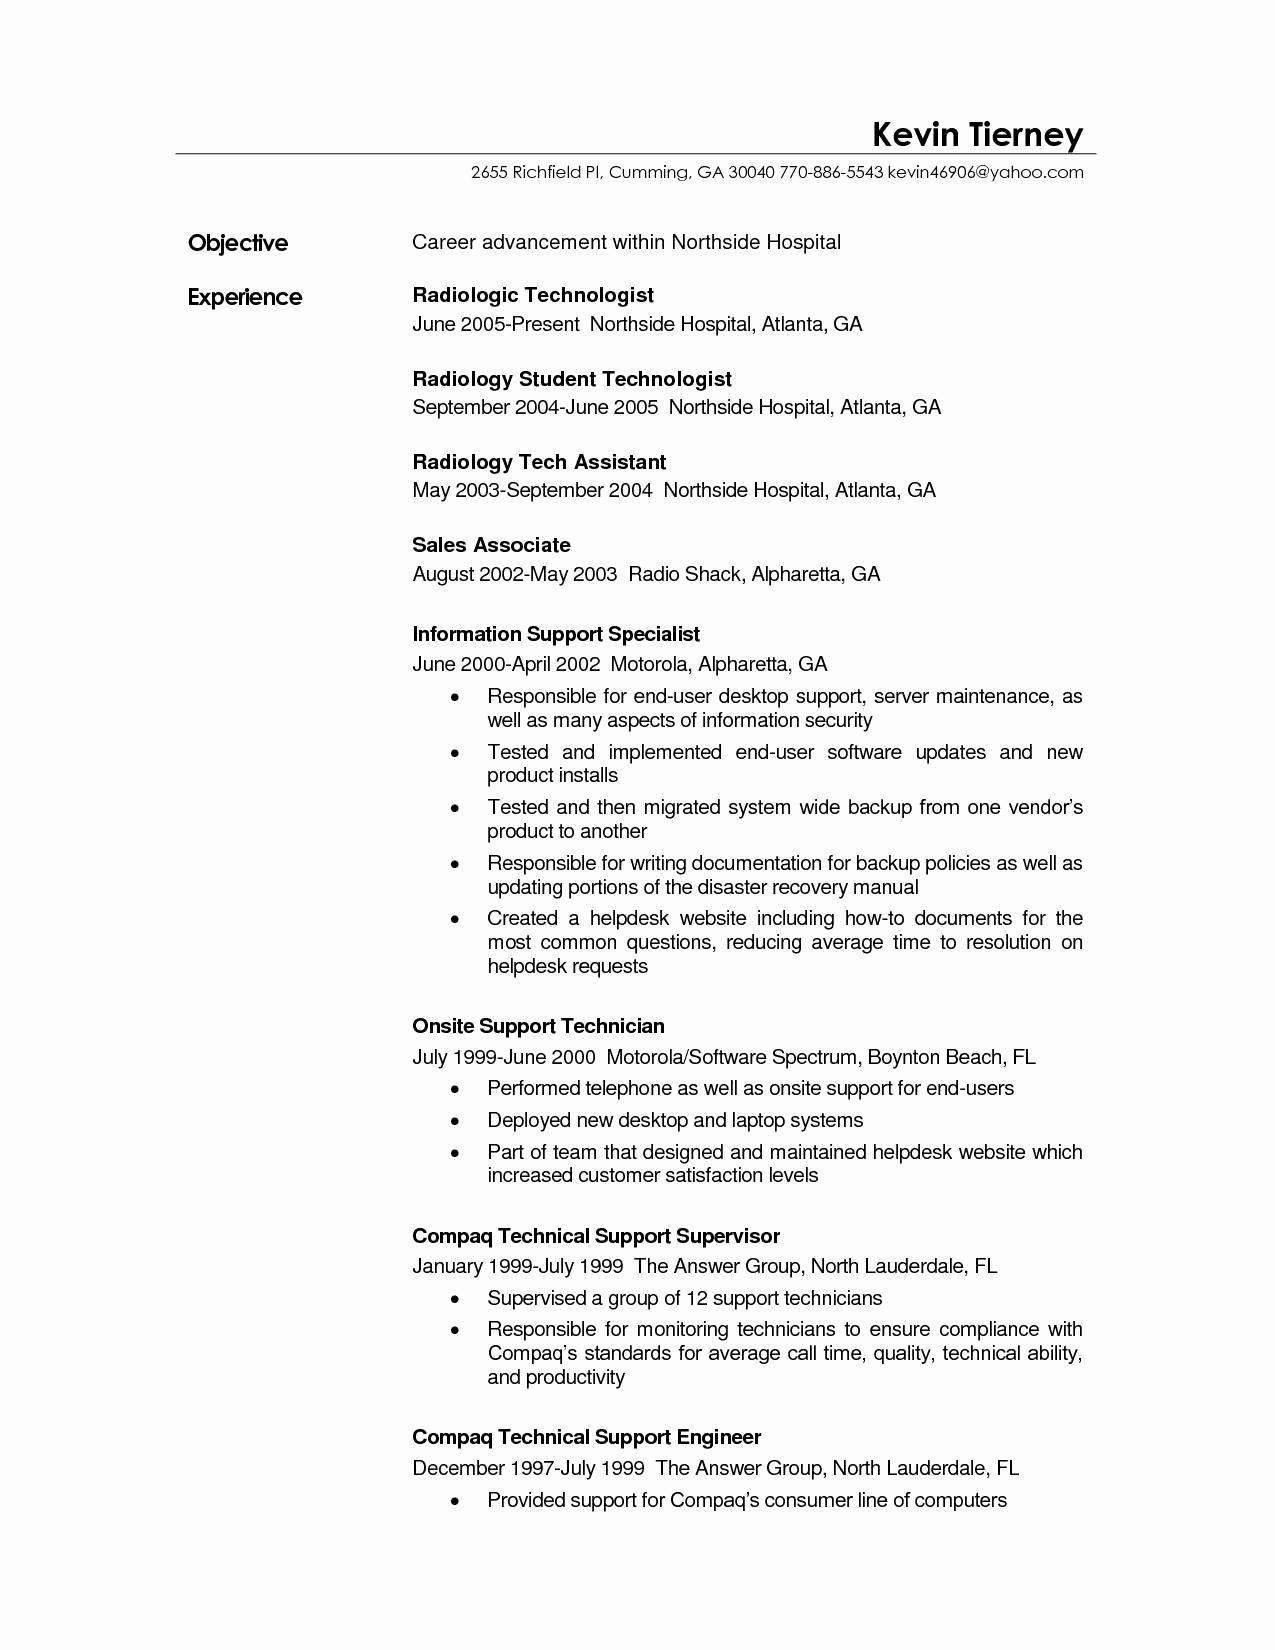 surgical tech resume template example-37 Fresh Surgical Tech Resume Sample 5-k